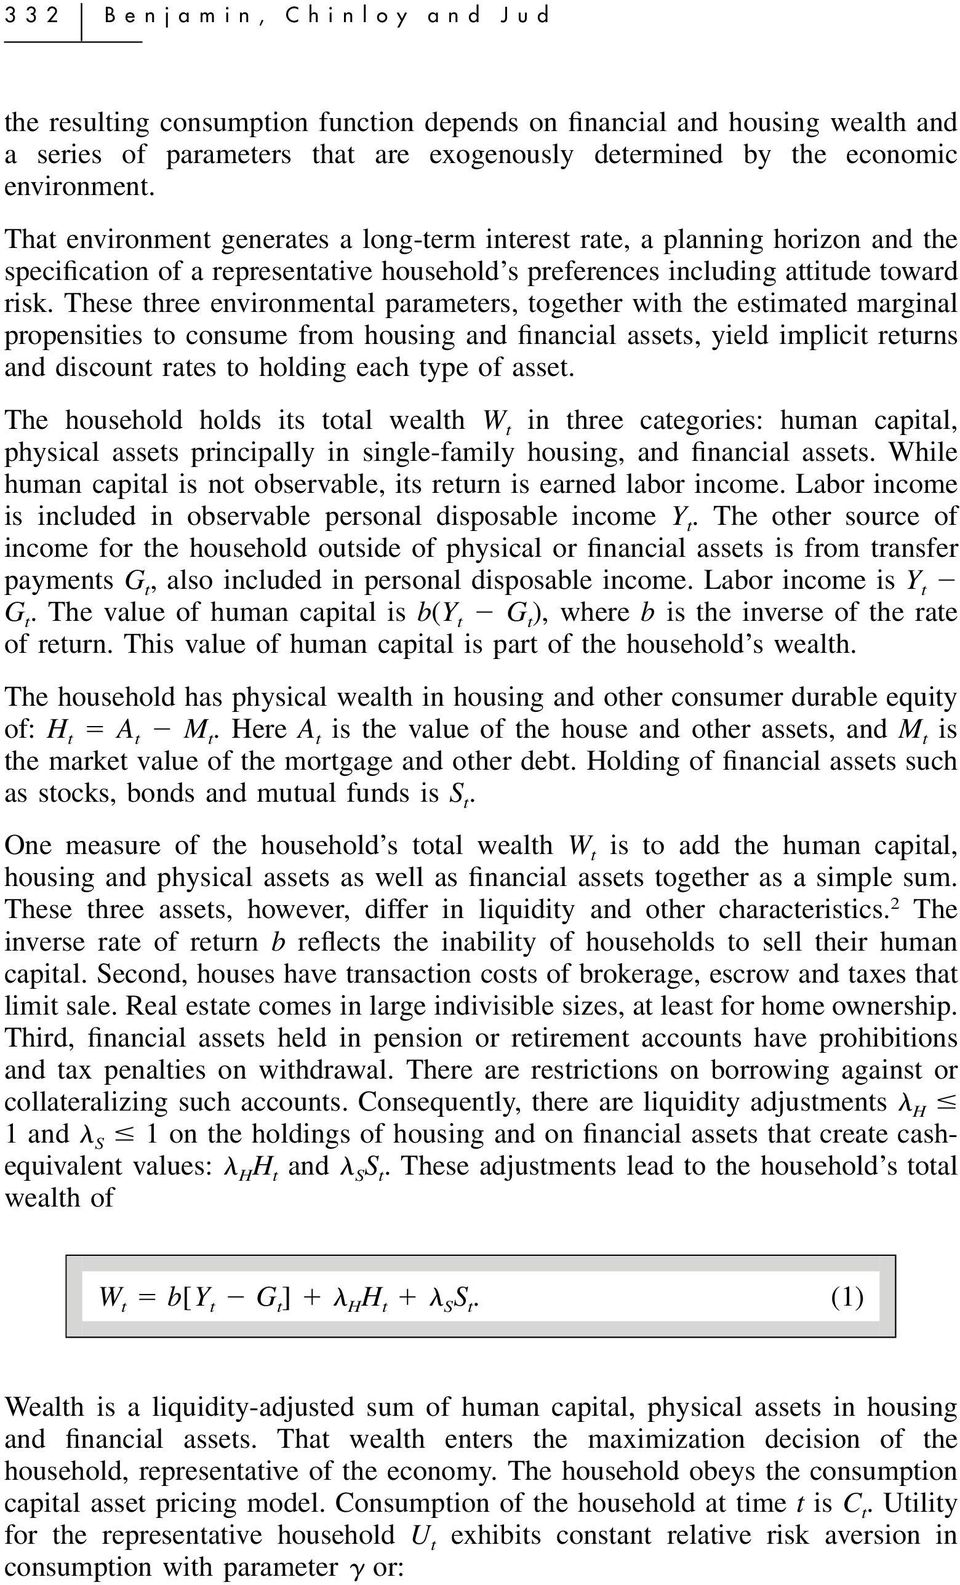 These three environmental parameters, together with the estimated marginal propensities to consume from housing and financial assets, yield implicit returns and discount rates to holding each type of